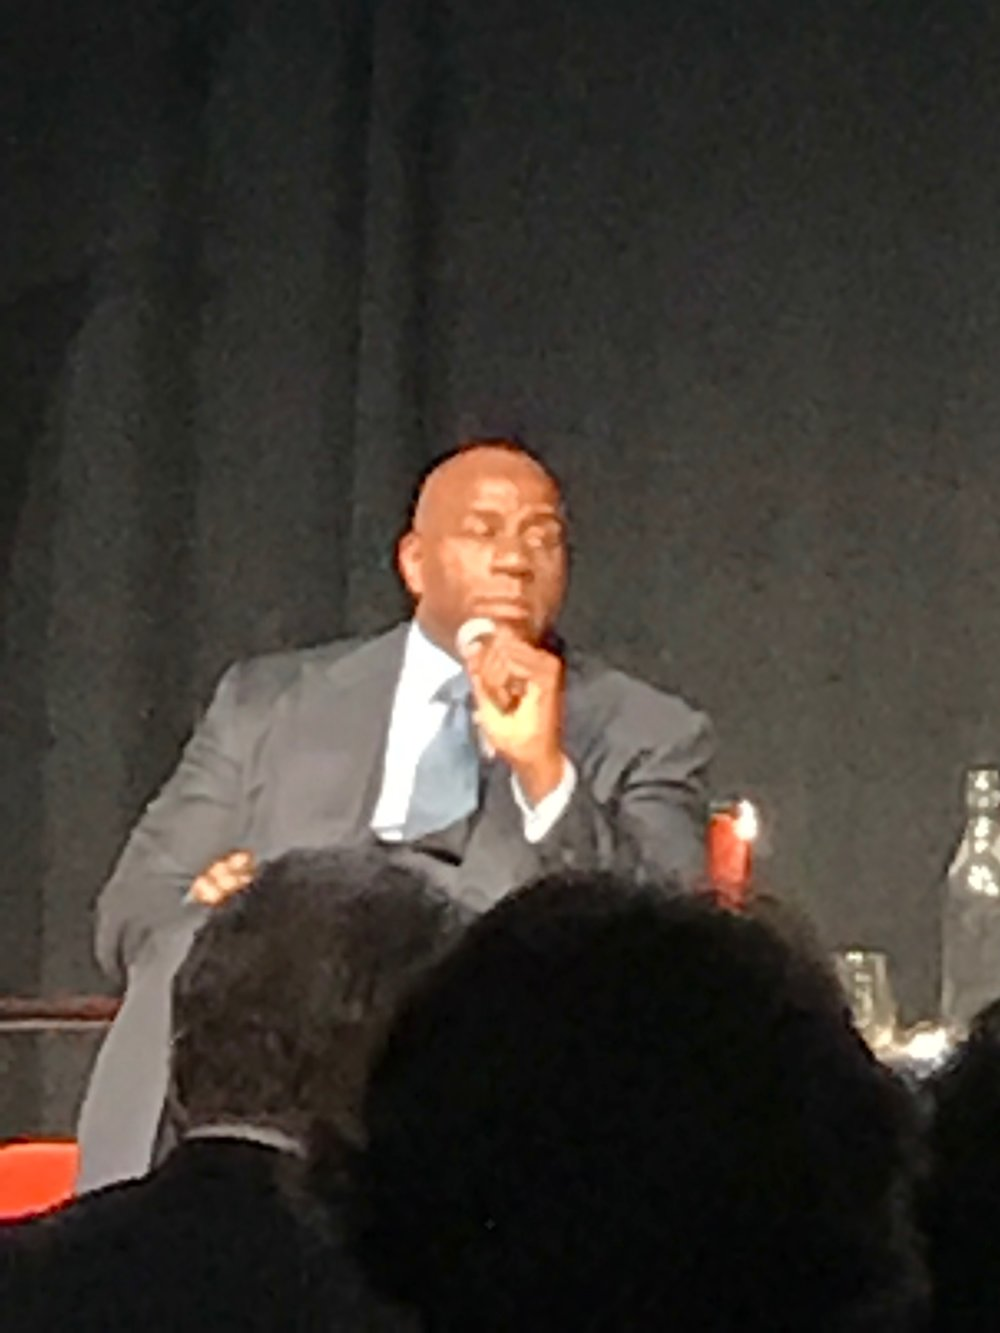 At the NBA Cares event in Los Angeles, Magic Johnson was a surprise guest speaker and quite dynamic. This event was hosted by Kaiser Permanente and NBA Cares.